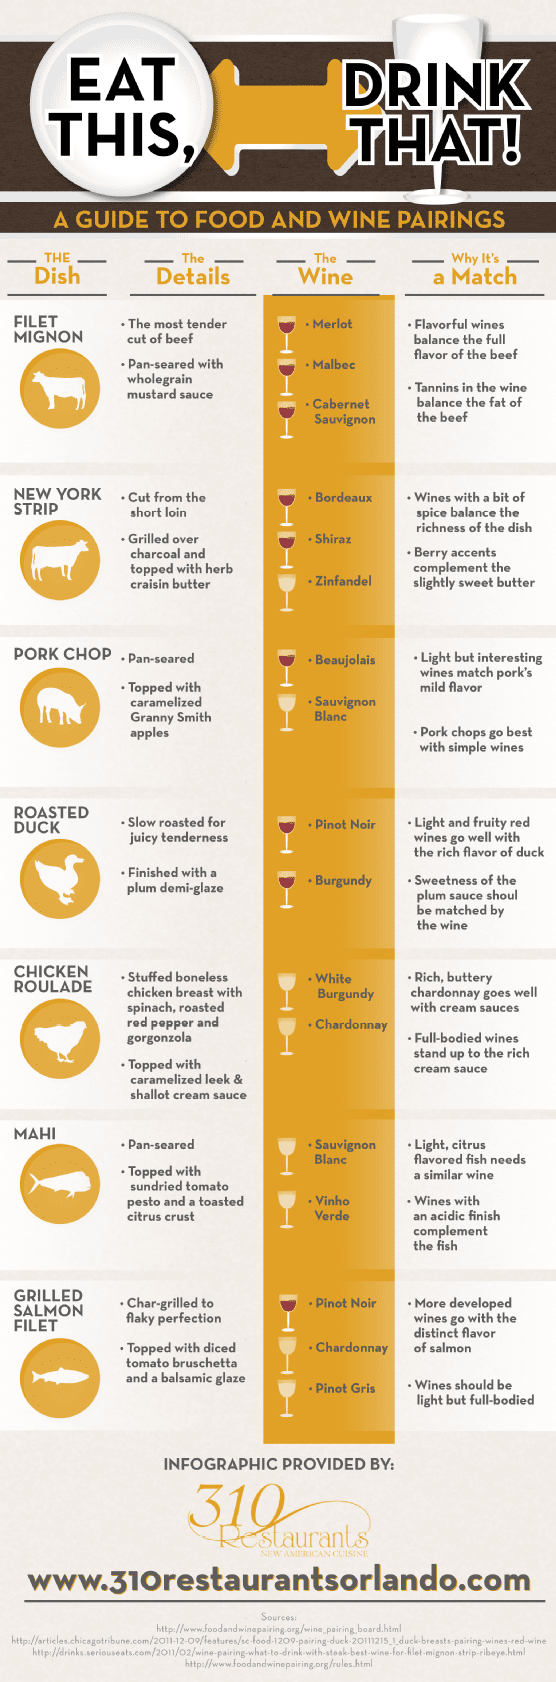 eat this drink that a guide to food and wine pairings